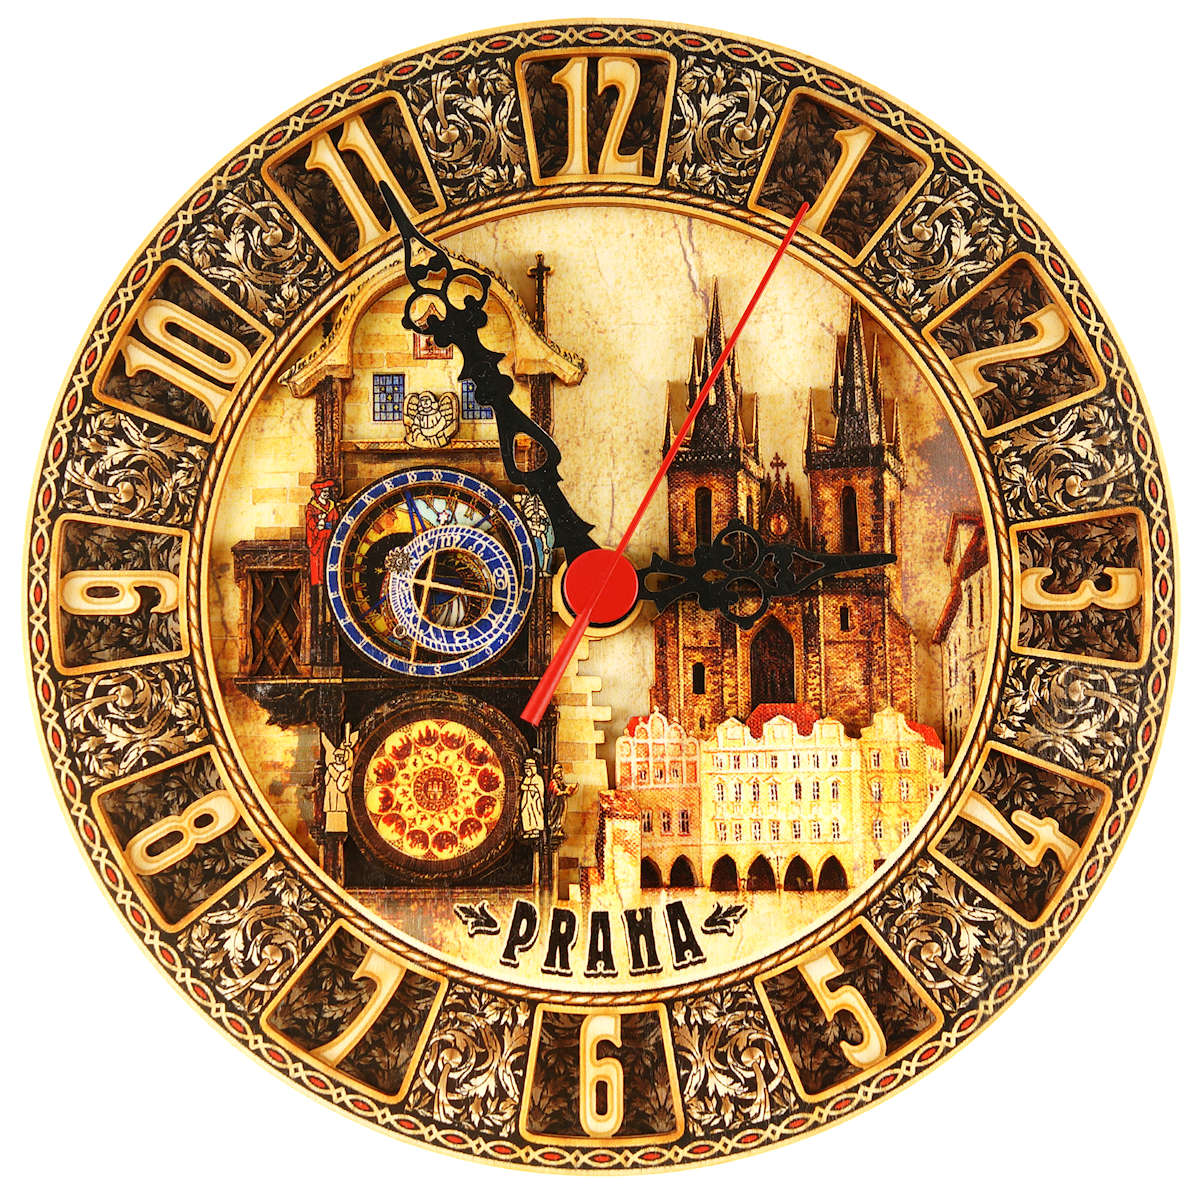 Prague Old Town Square painted wooden clock